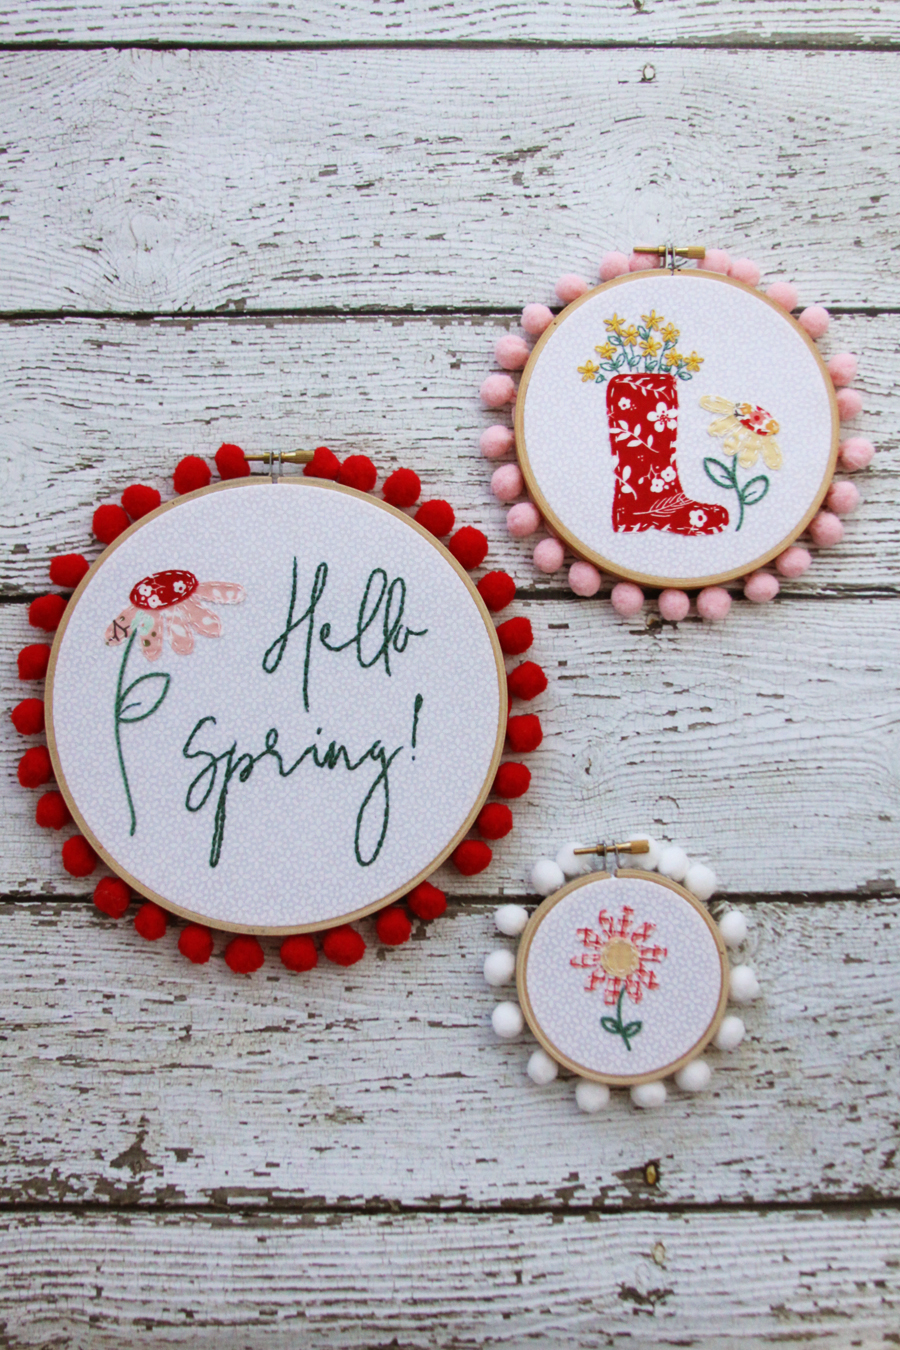 Spring embroidery hoop wreath decor: adorable floral spring stitched embroidery hoop set via Flamingo Toes #spring #embroideryhoops #homedecor | https://www.roseclearfield.com